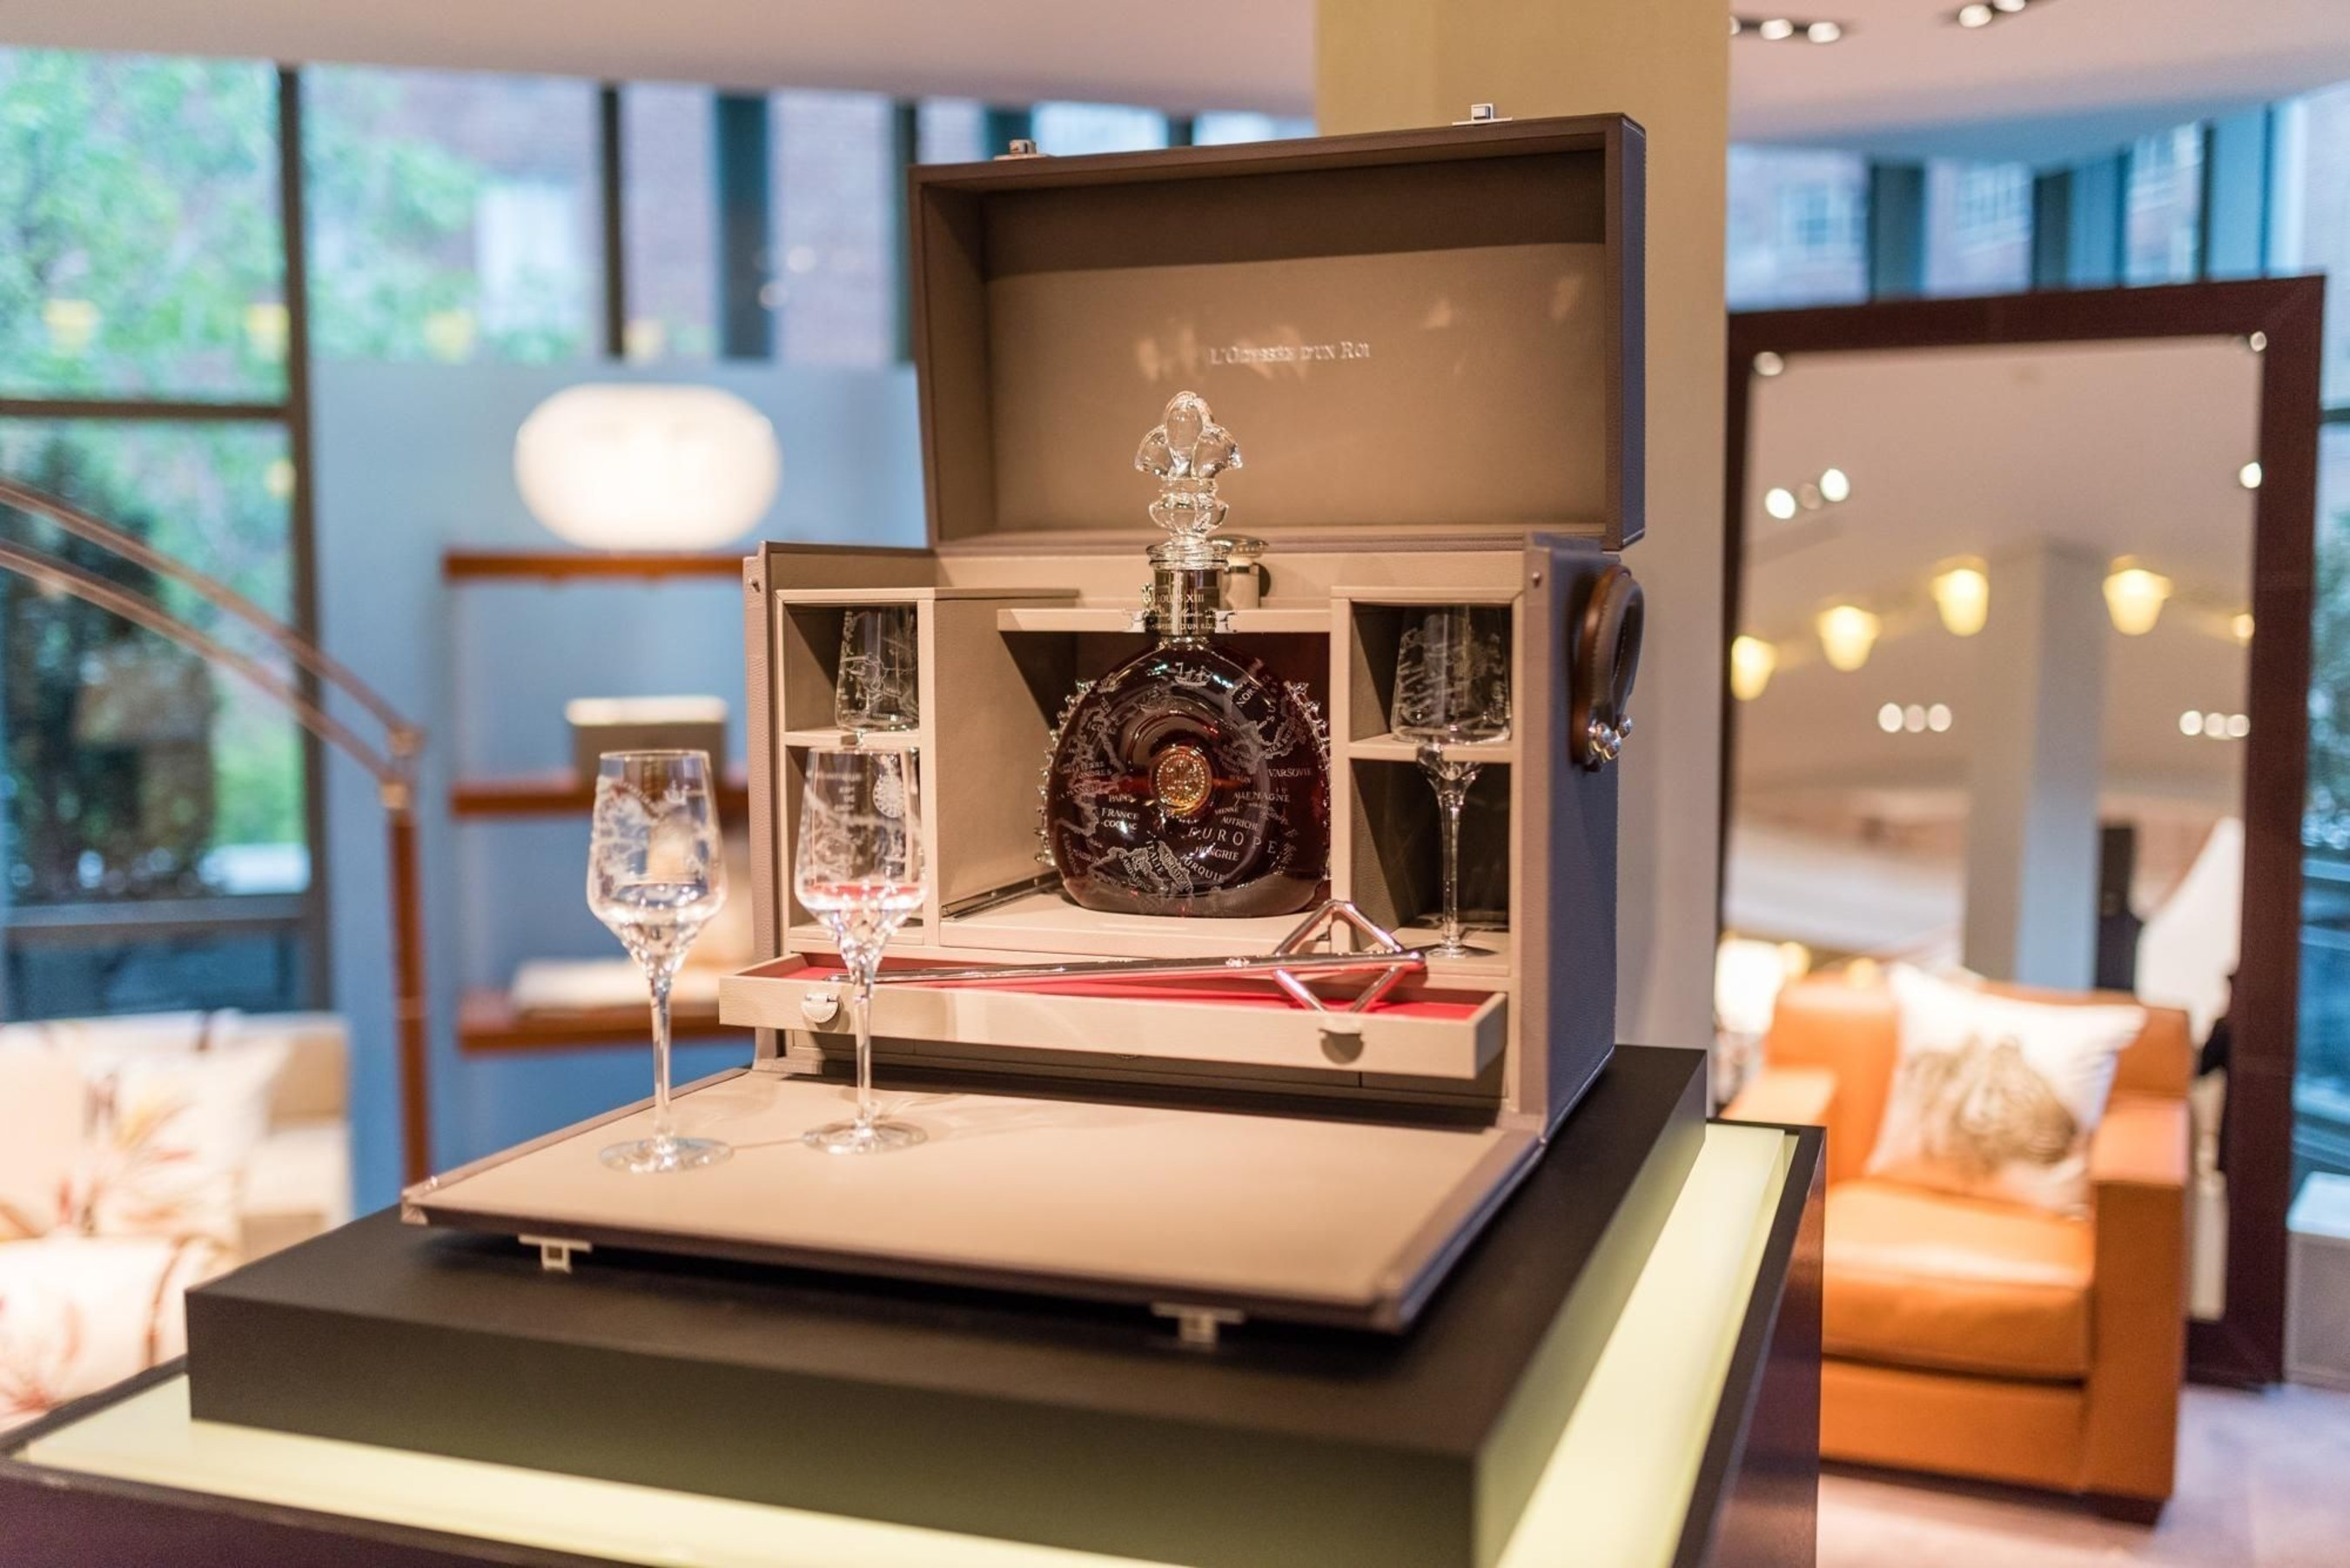 LOUIS XIII Fetches Record Price of US$ 558,000 for Three LOUIS XIII L'ODYSS'E D'UN ROI Limited Editions Auctioned by Sotheby's